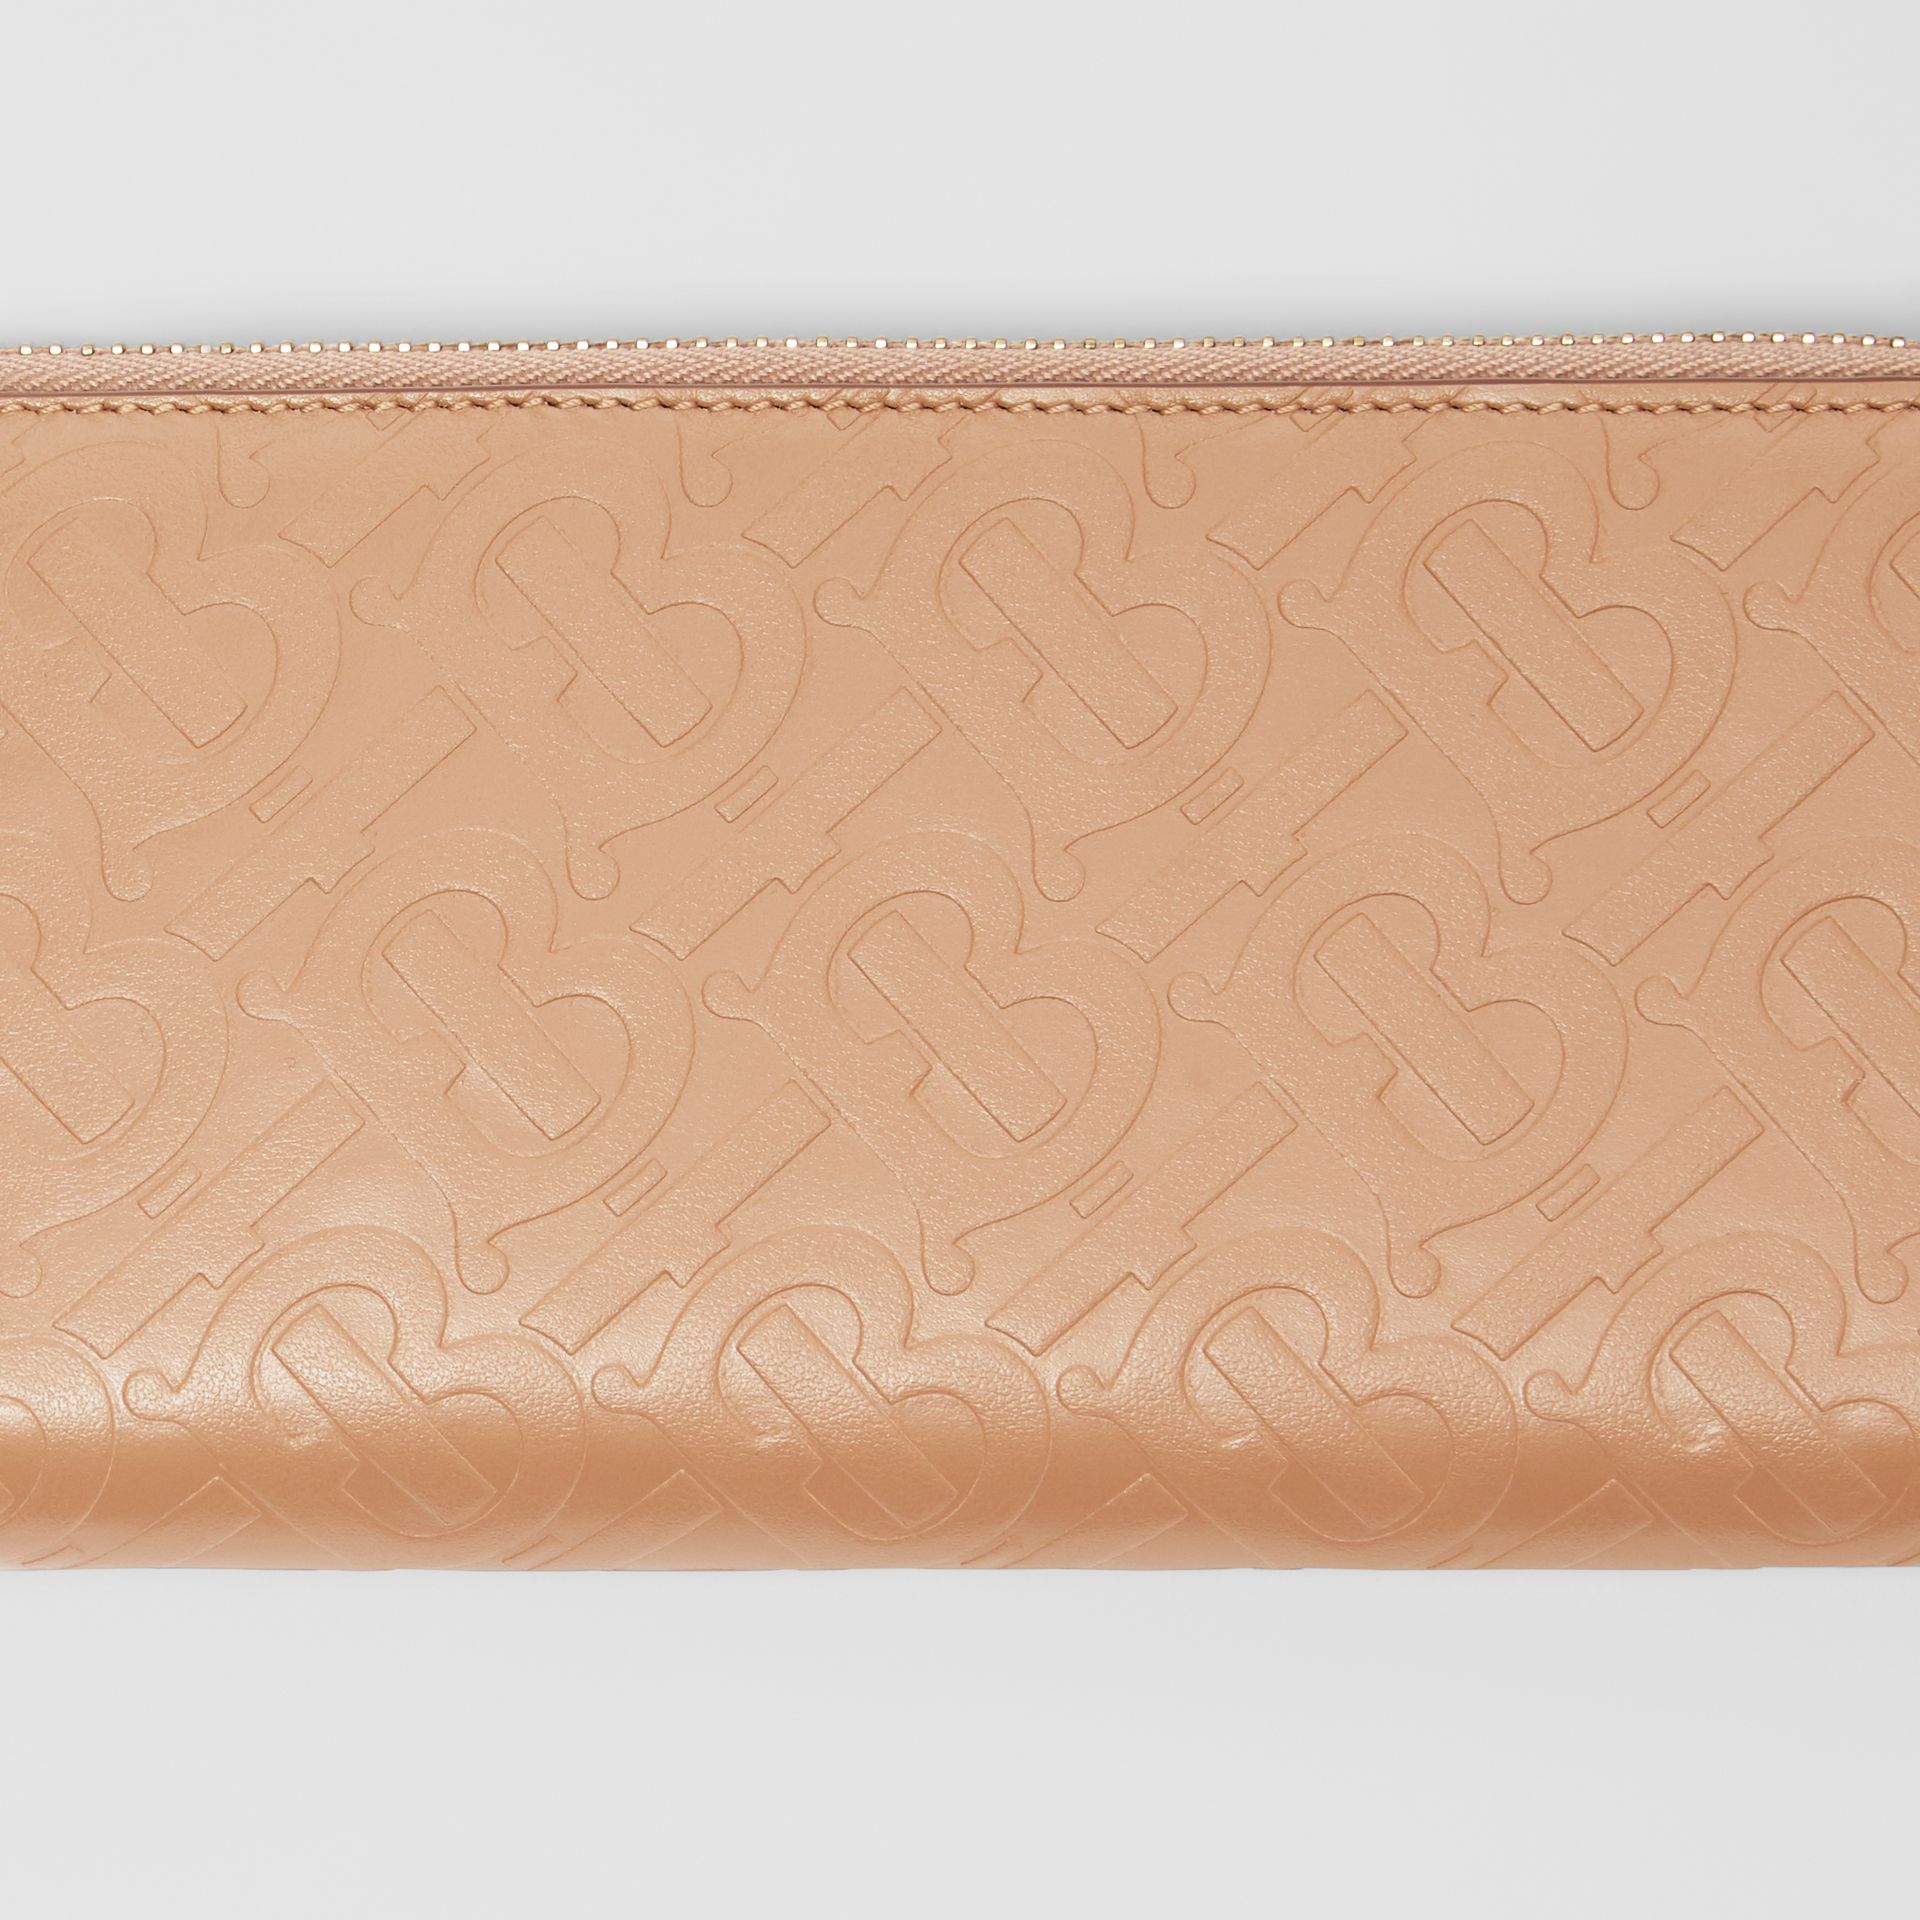 Monogram Leather Ziparound Wallet in Light Camel - Women | Burberry - gallery image 1